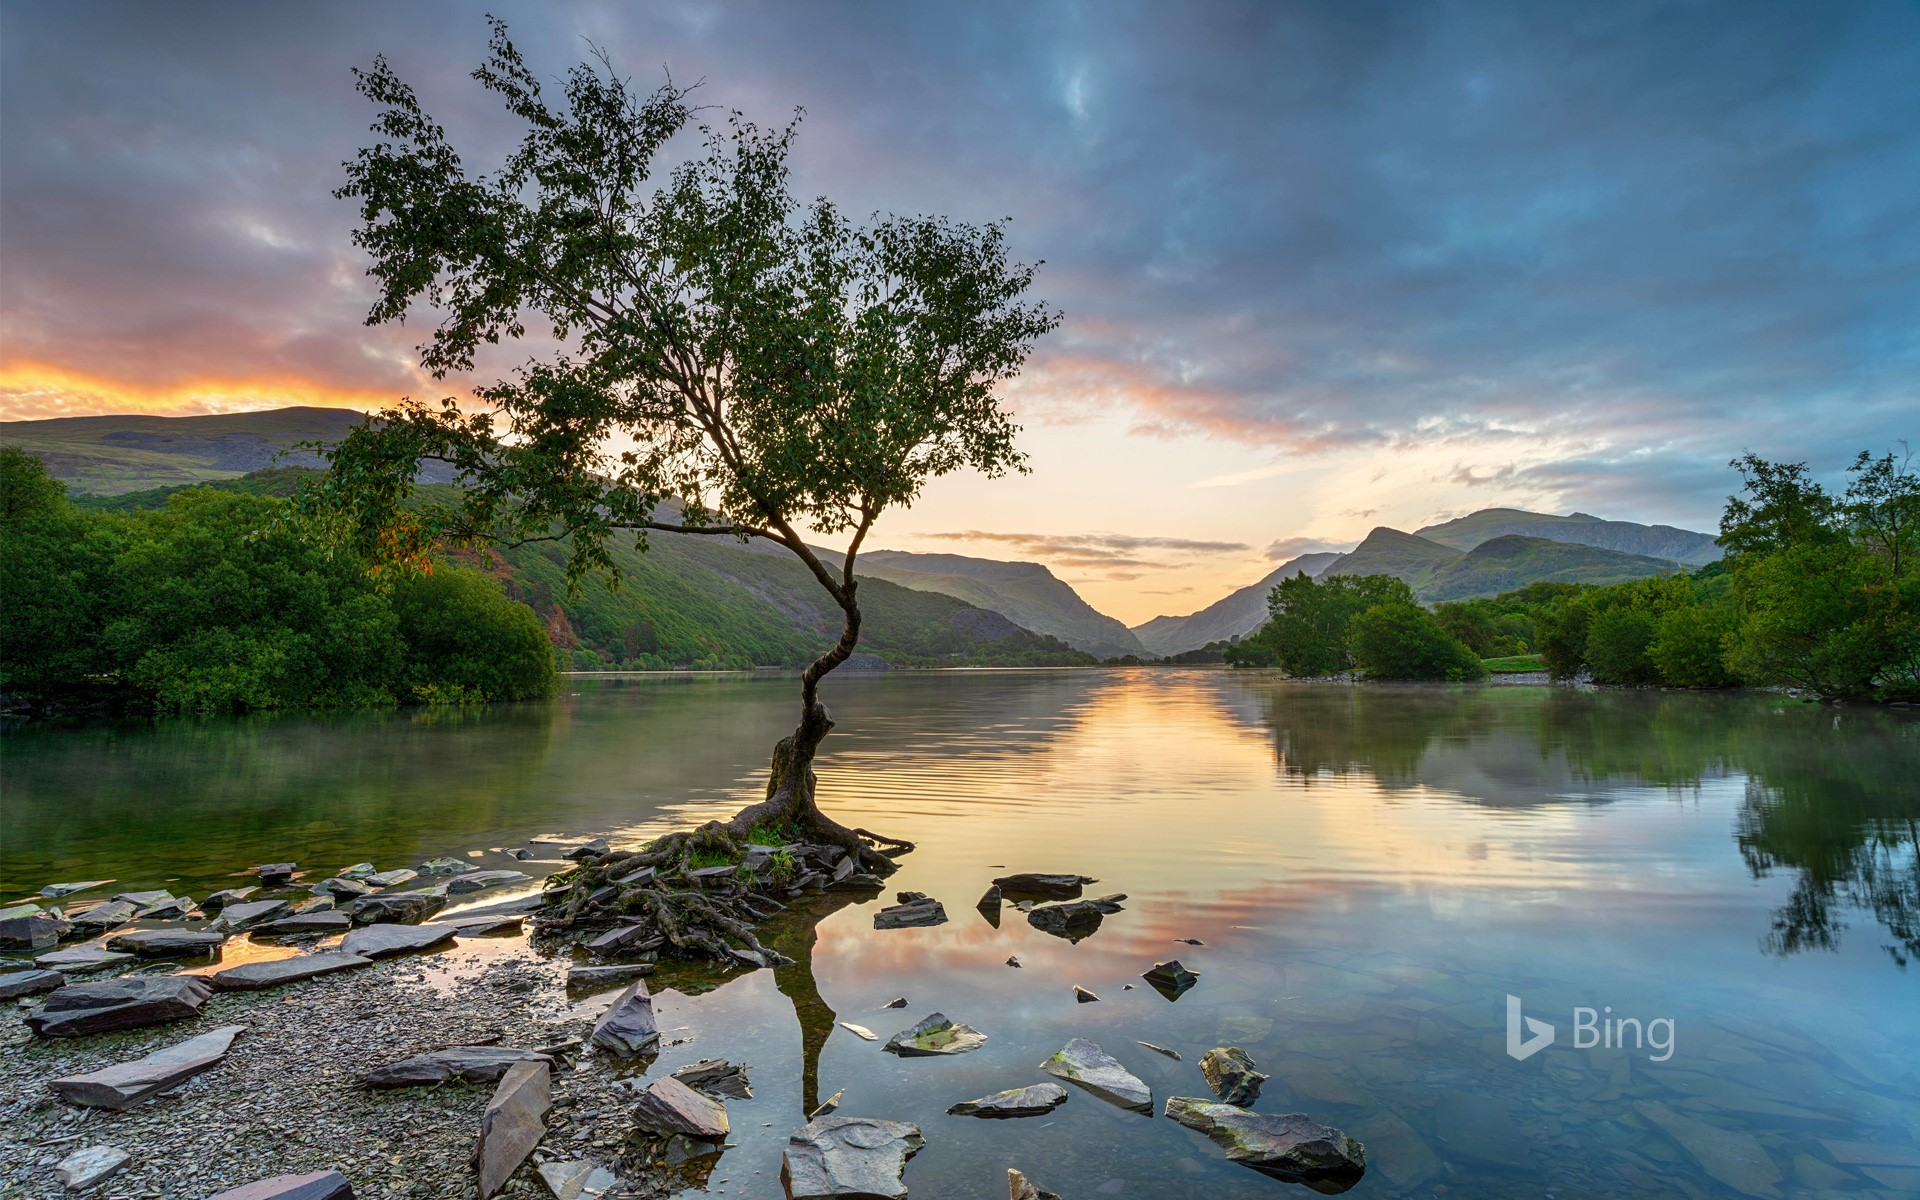 Sunrise at Llyn Padarn at Llanberis, Snowdonia National Park